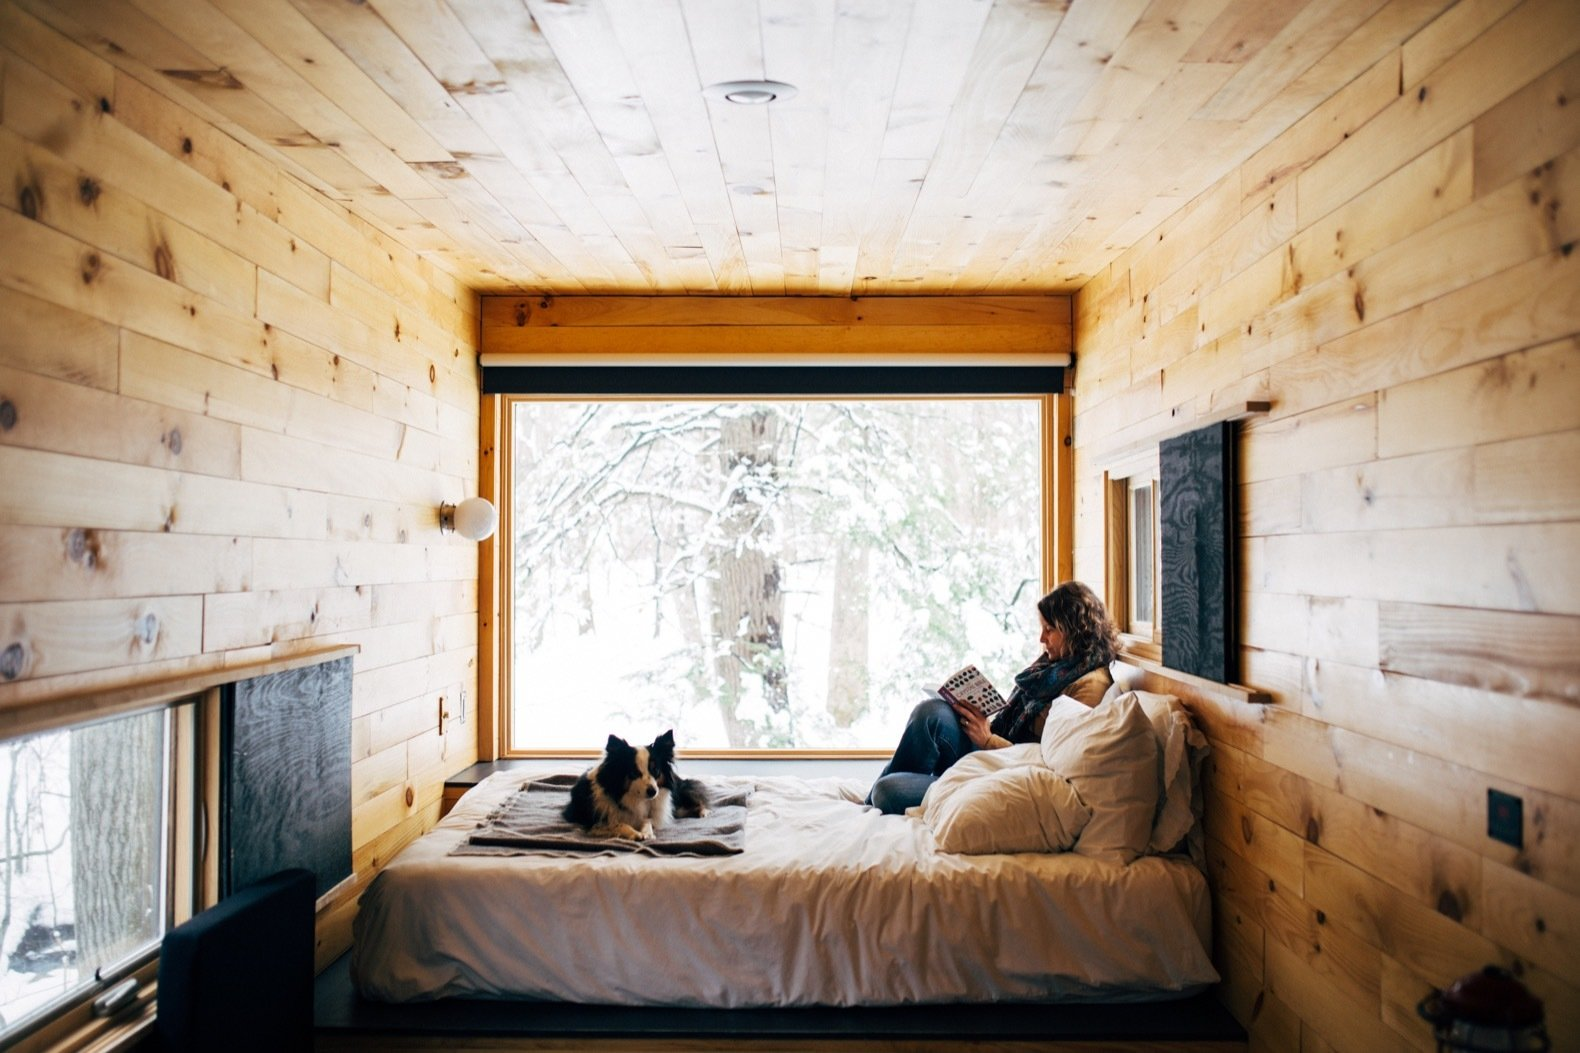 Bedroom, Wall Lighting, Medium Hardwood Floor, Ceiling Lighting, and Bed Getaway offers rentable micro cabins to help urban dwellers escape the daily grind.  Photo 6 of 9 in Rediscover the Pleasure of Solitude in These Micro Cabins Across the East Coast